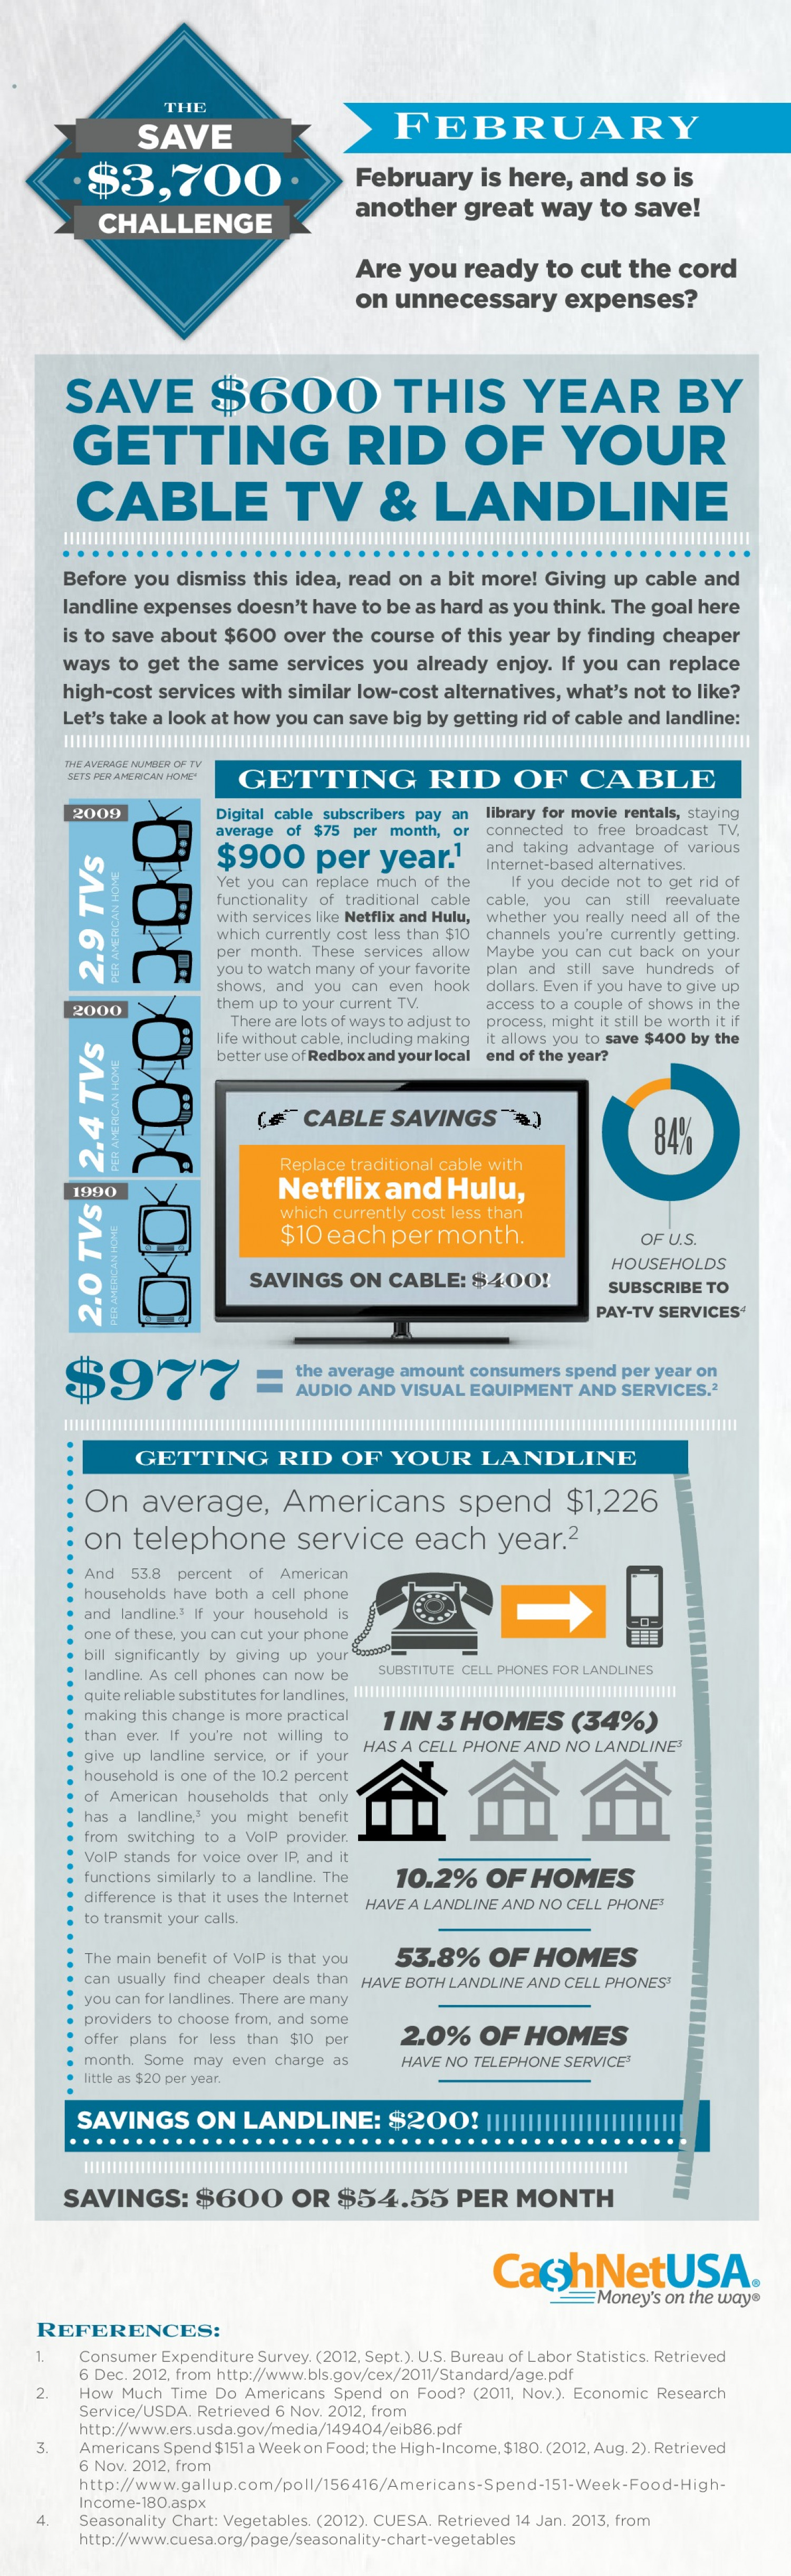 The Save $3,700 Challenge - February Infographic